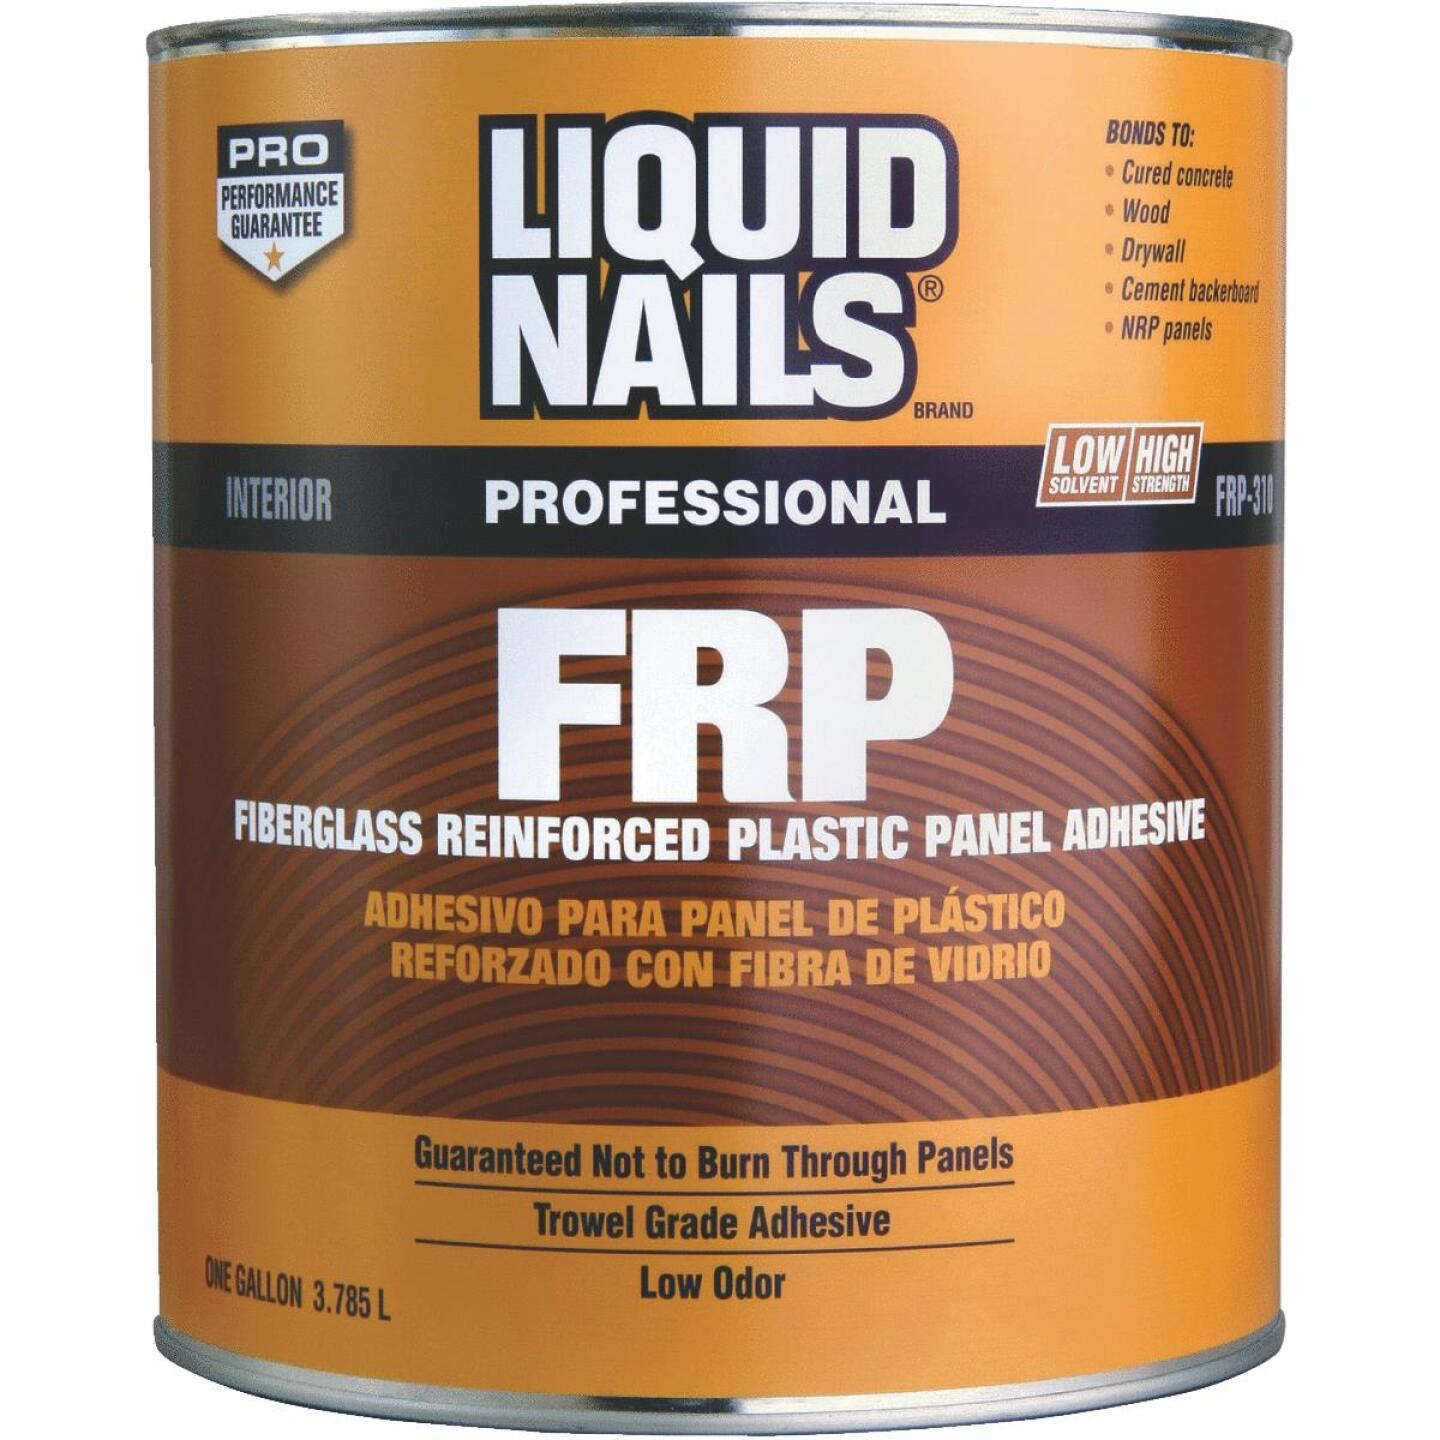 LIQUID NAILS 1 Gal. FRP Panel Adhesive Image 1